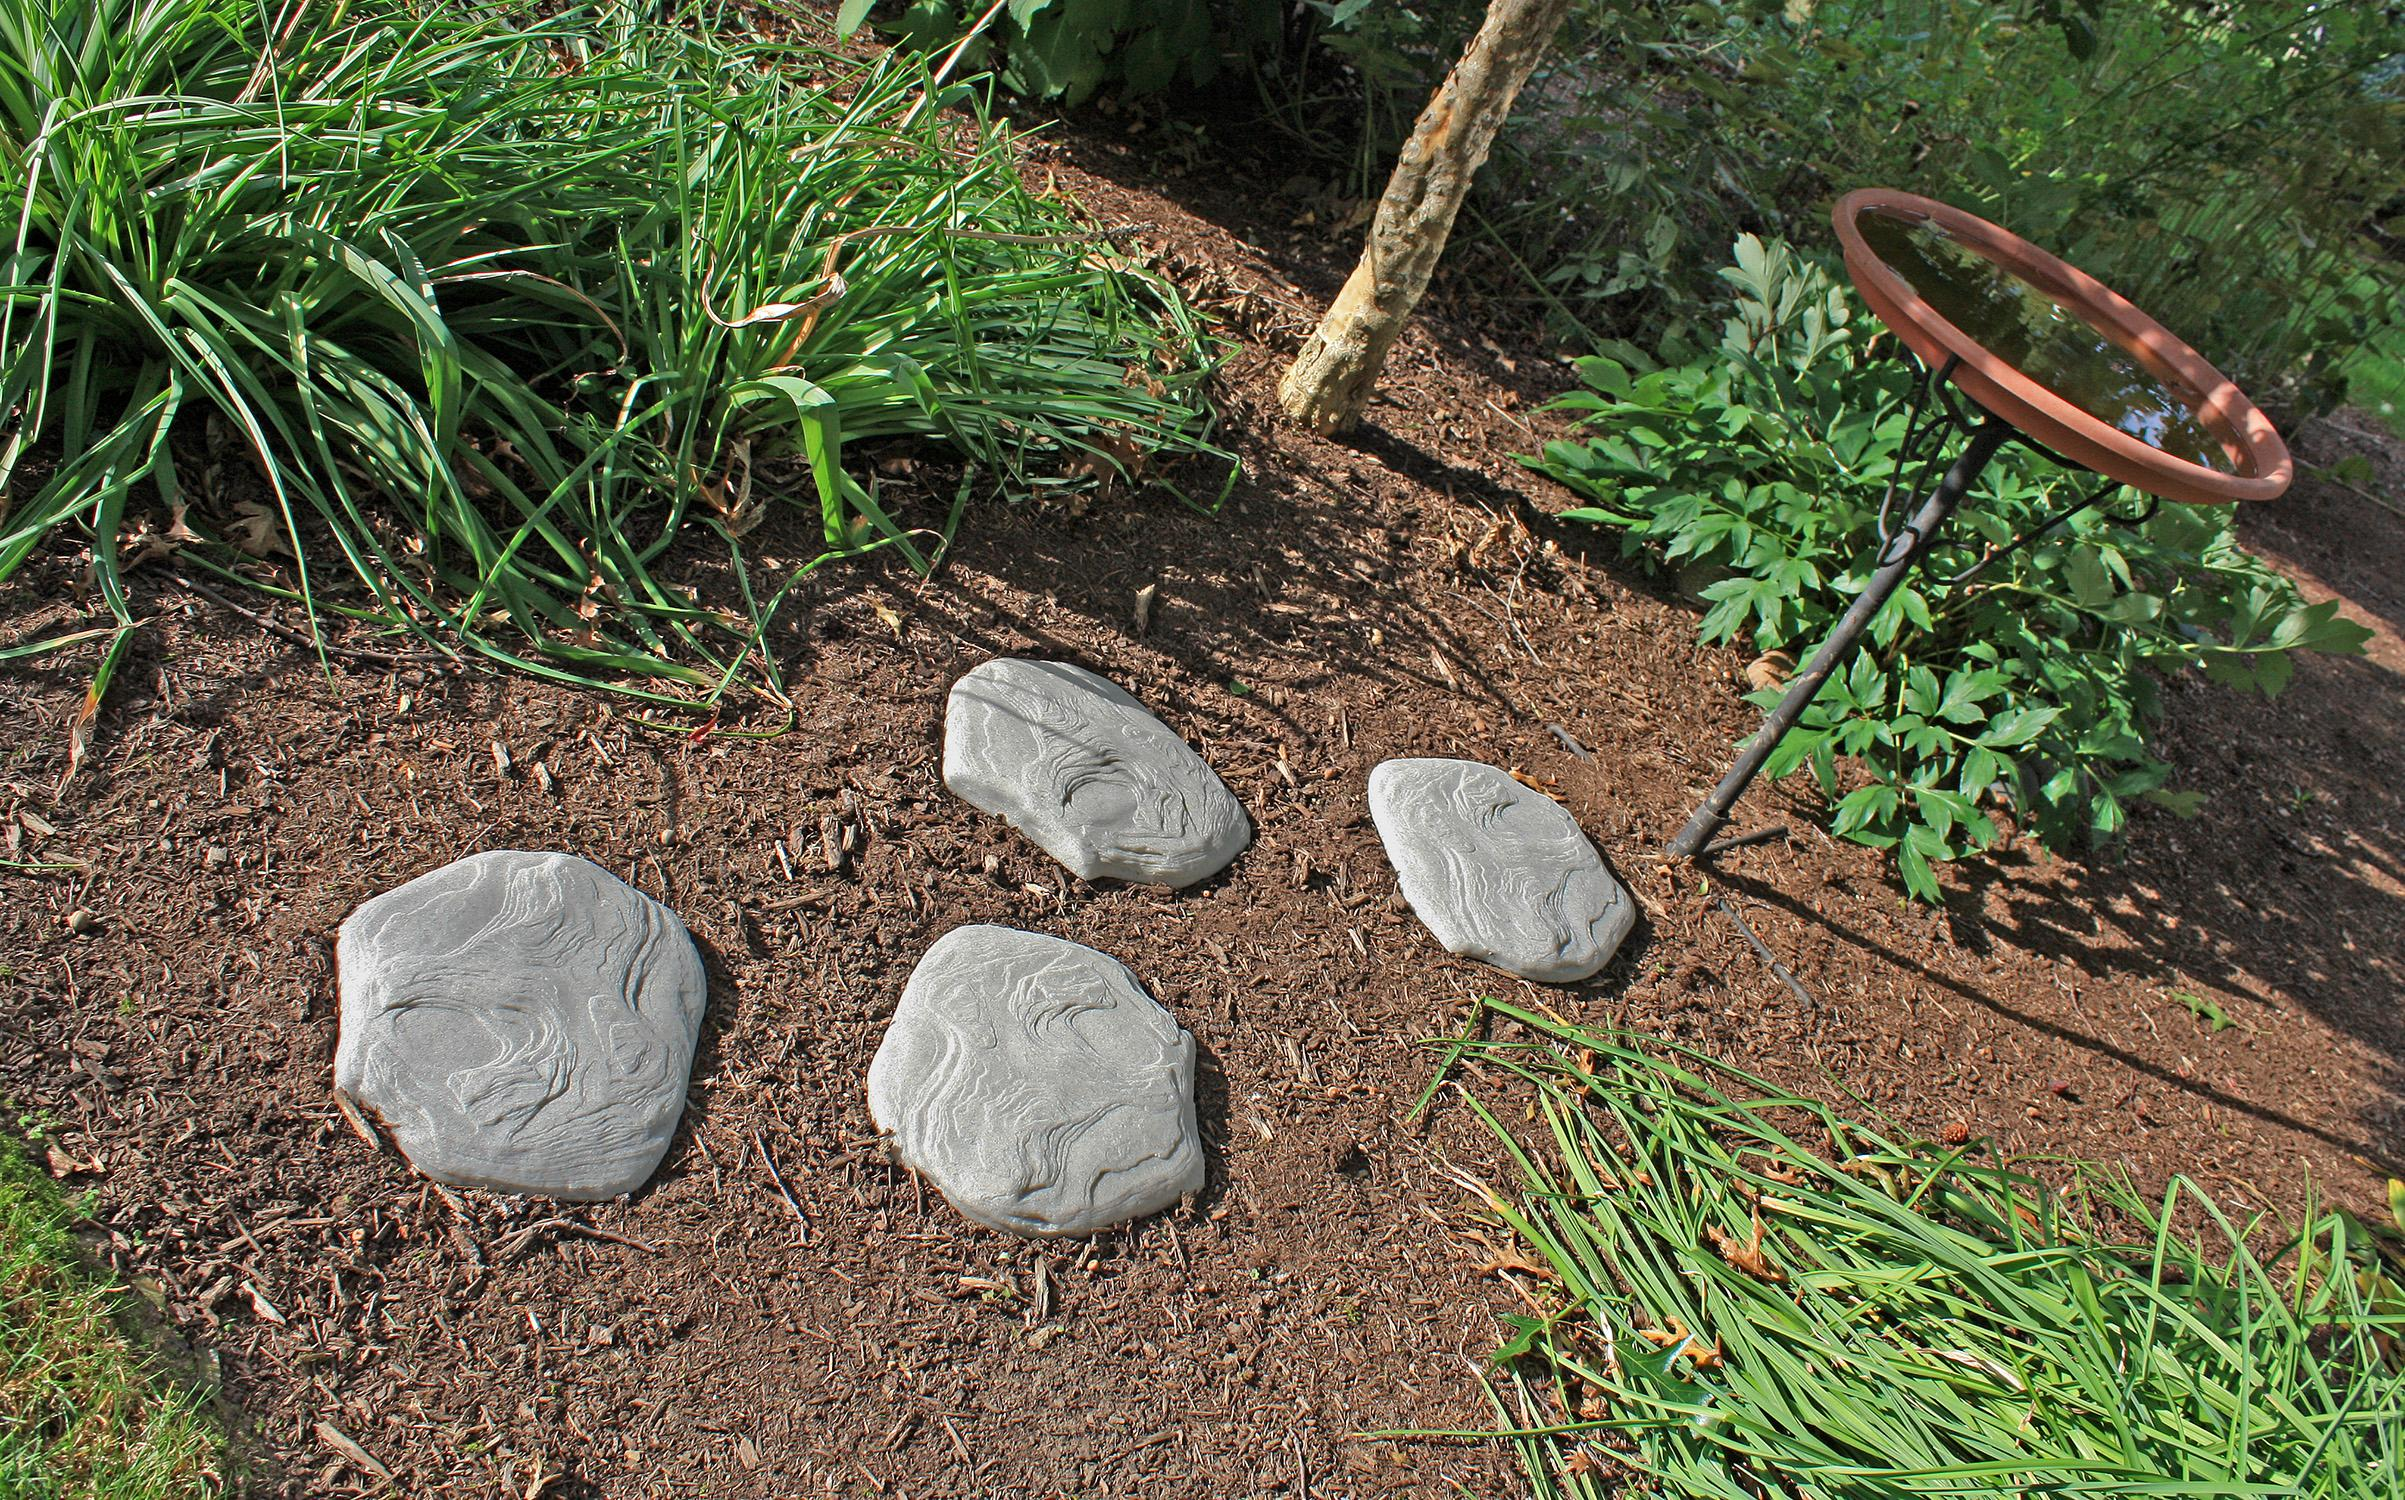 Good ideas luna ss4 lig luna stepping stone for Solar powered glow stepping stones